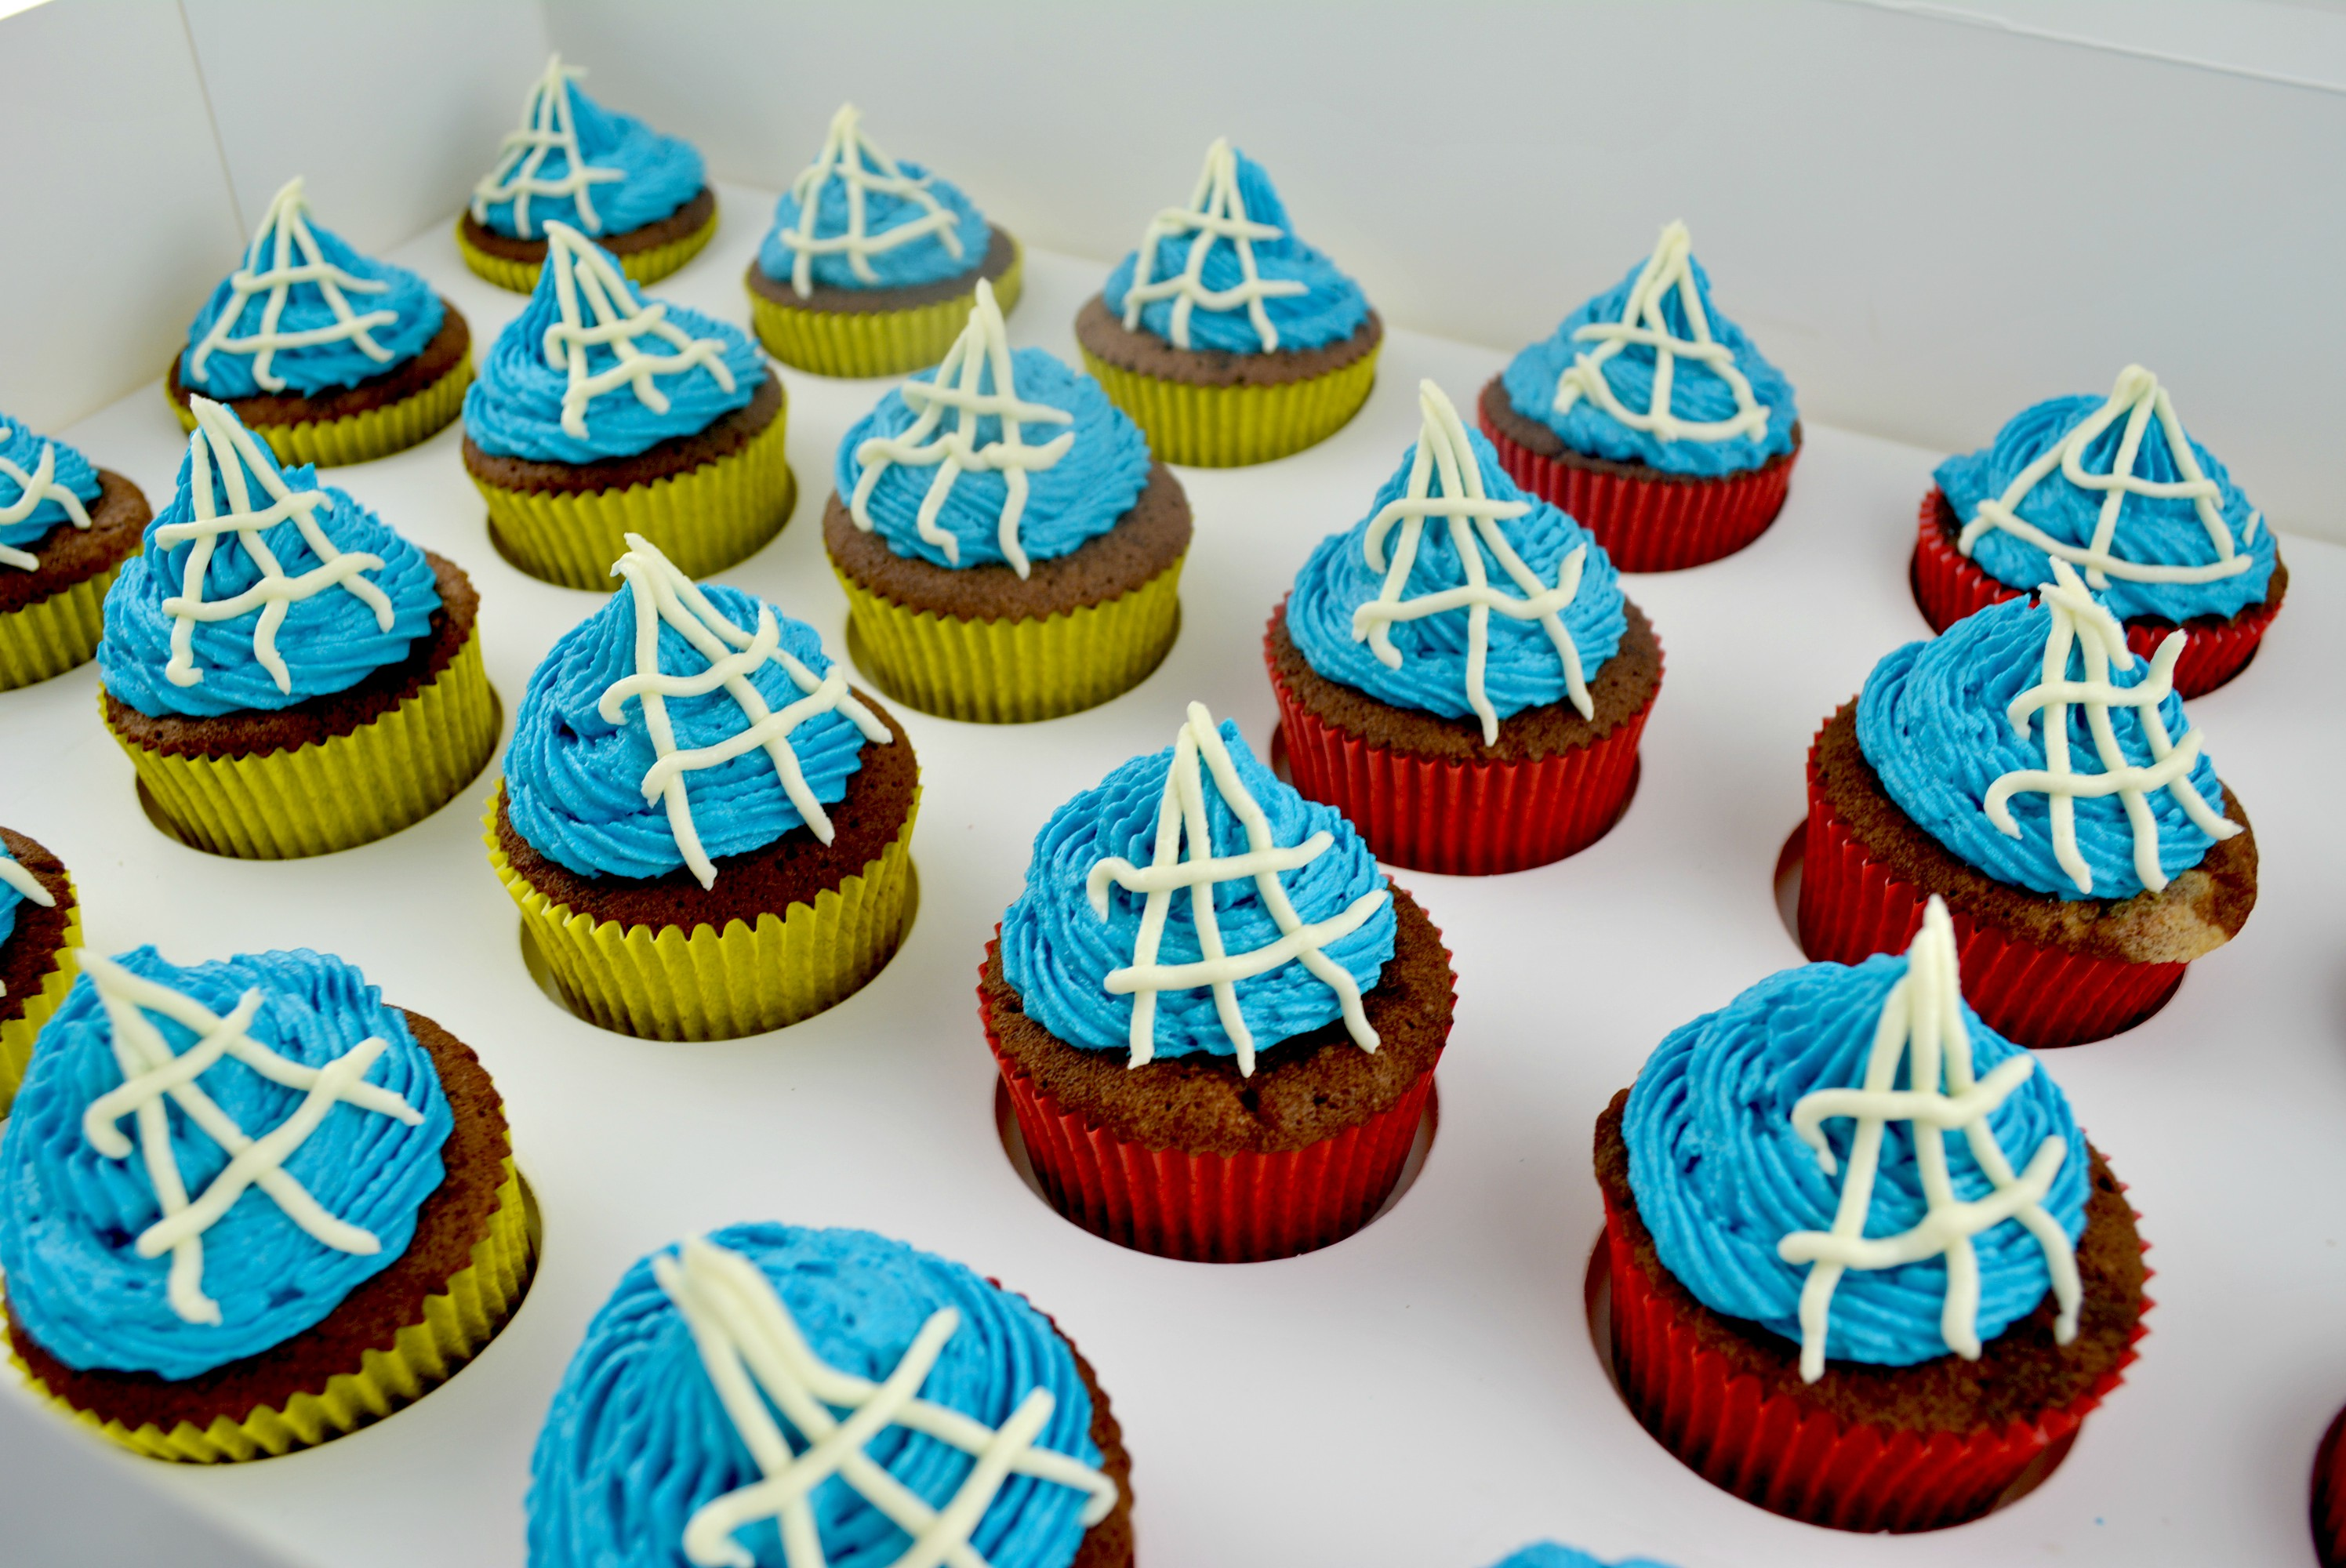 SpidermanCupcakes_cakewaves